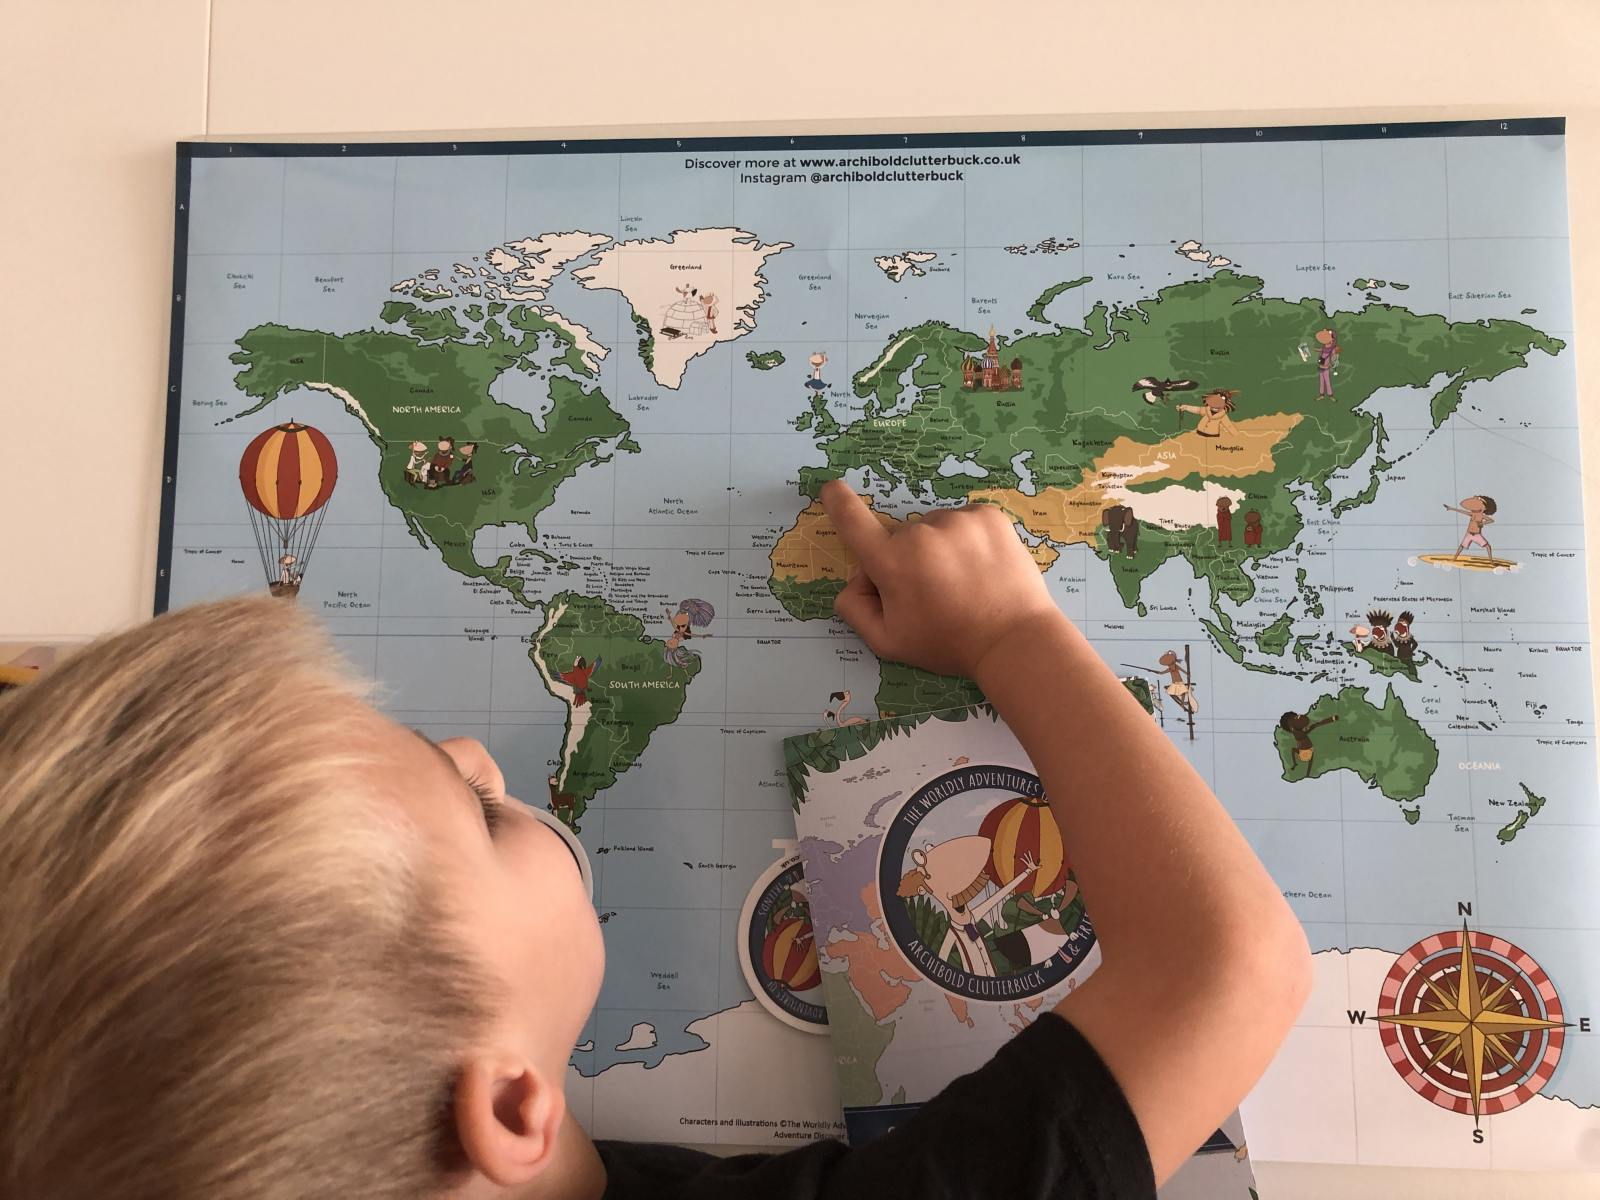 Archibold Clutterbuck world map boy pointing to europe